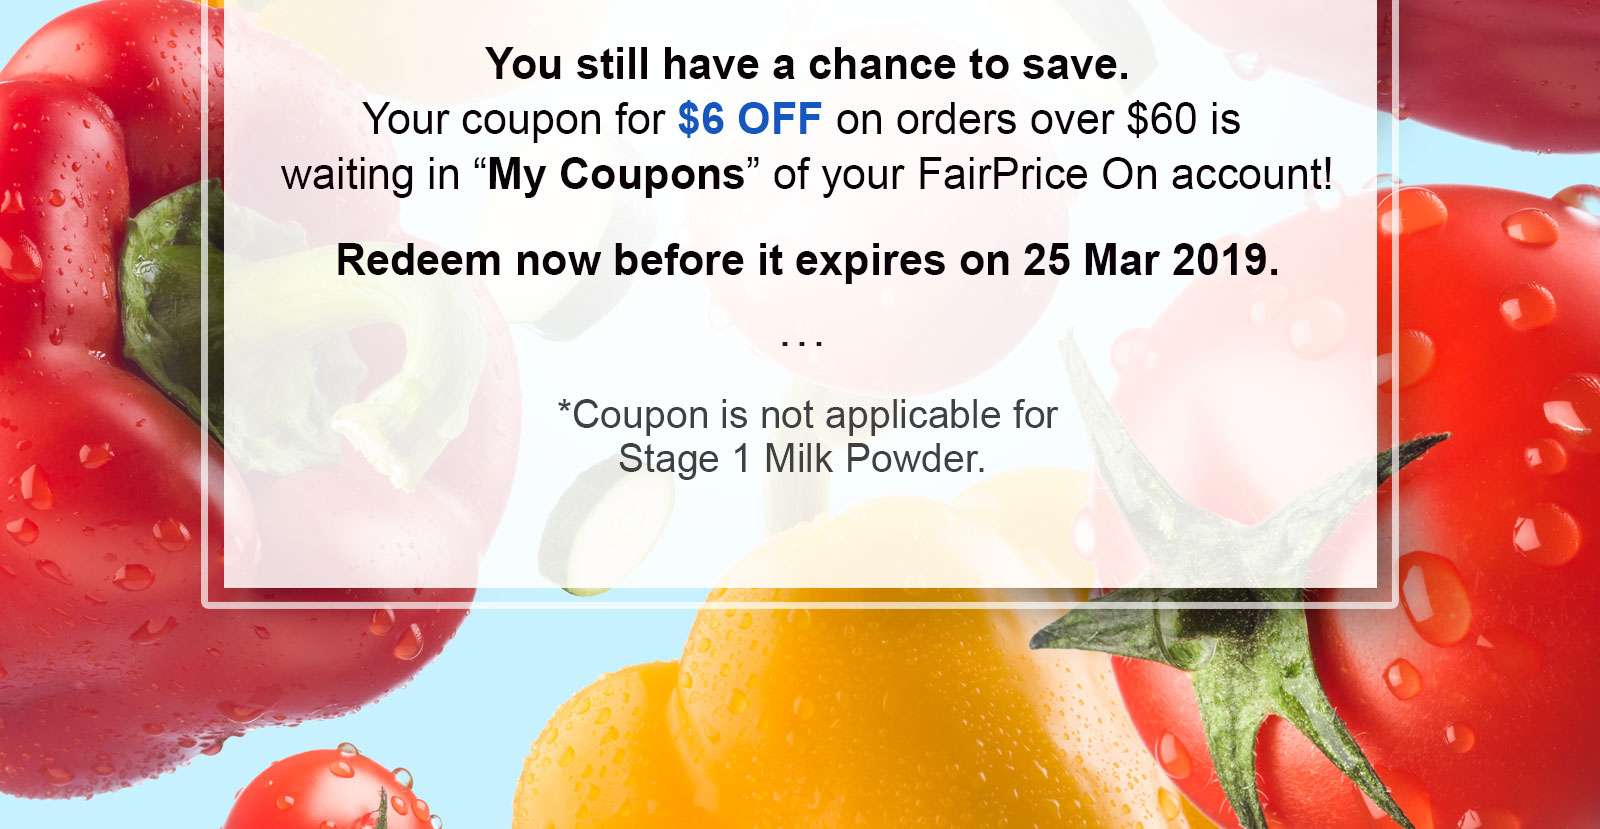 Check in 'My Coupons' to get started.